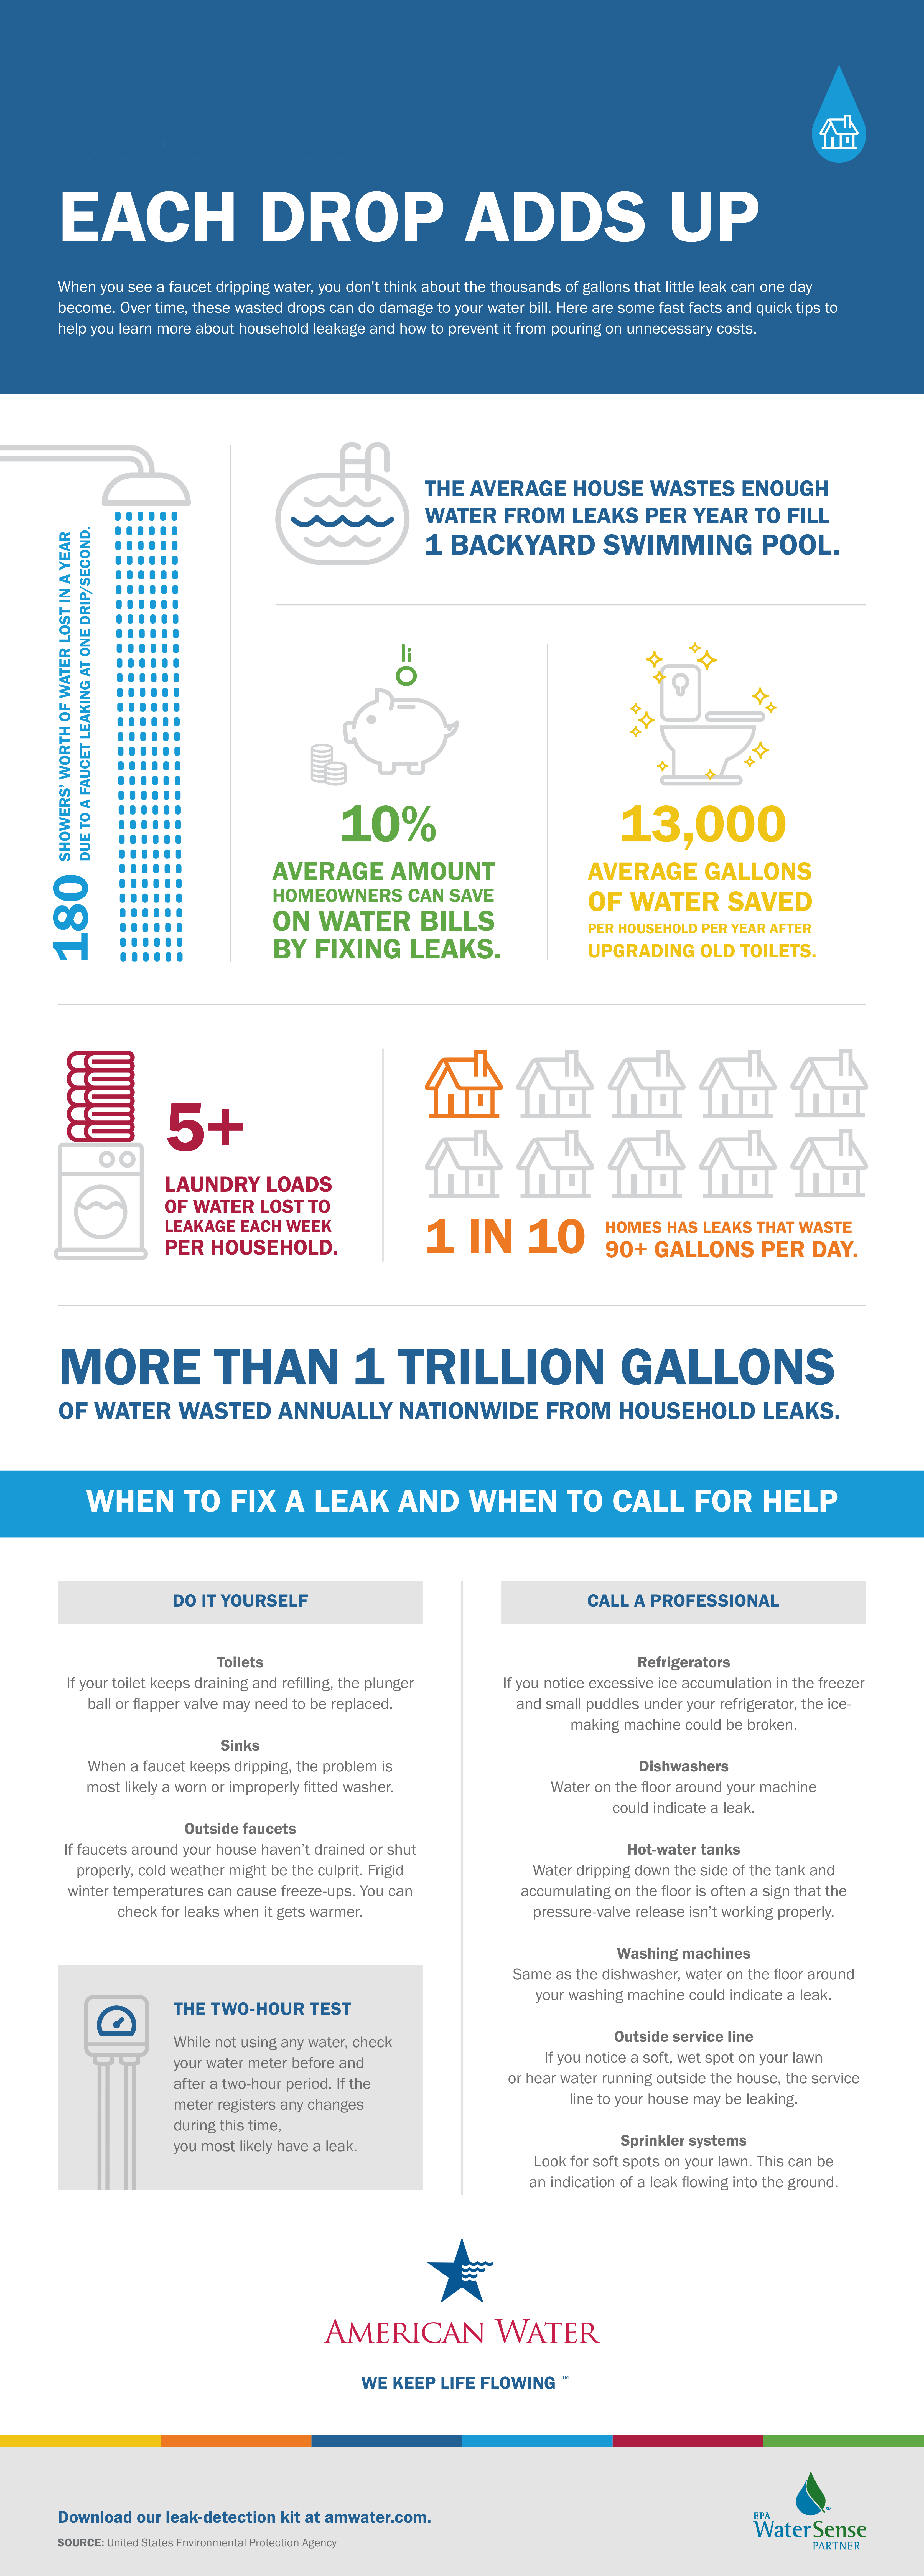 Fix a Leak - Each Drop Adds Up Infographic